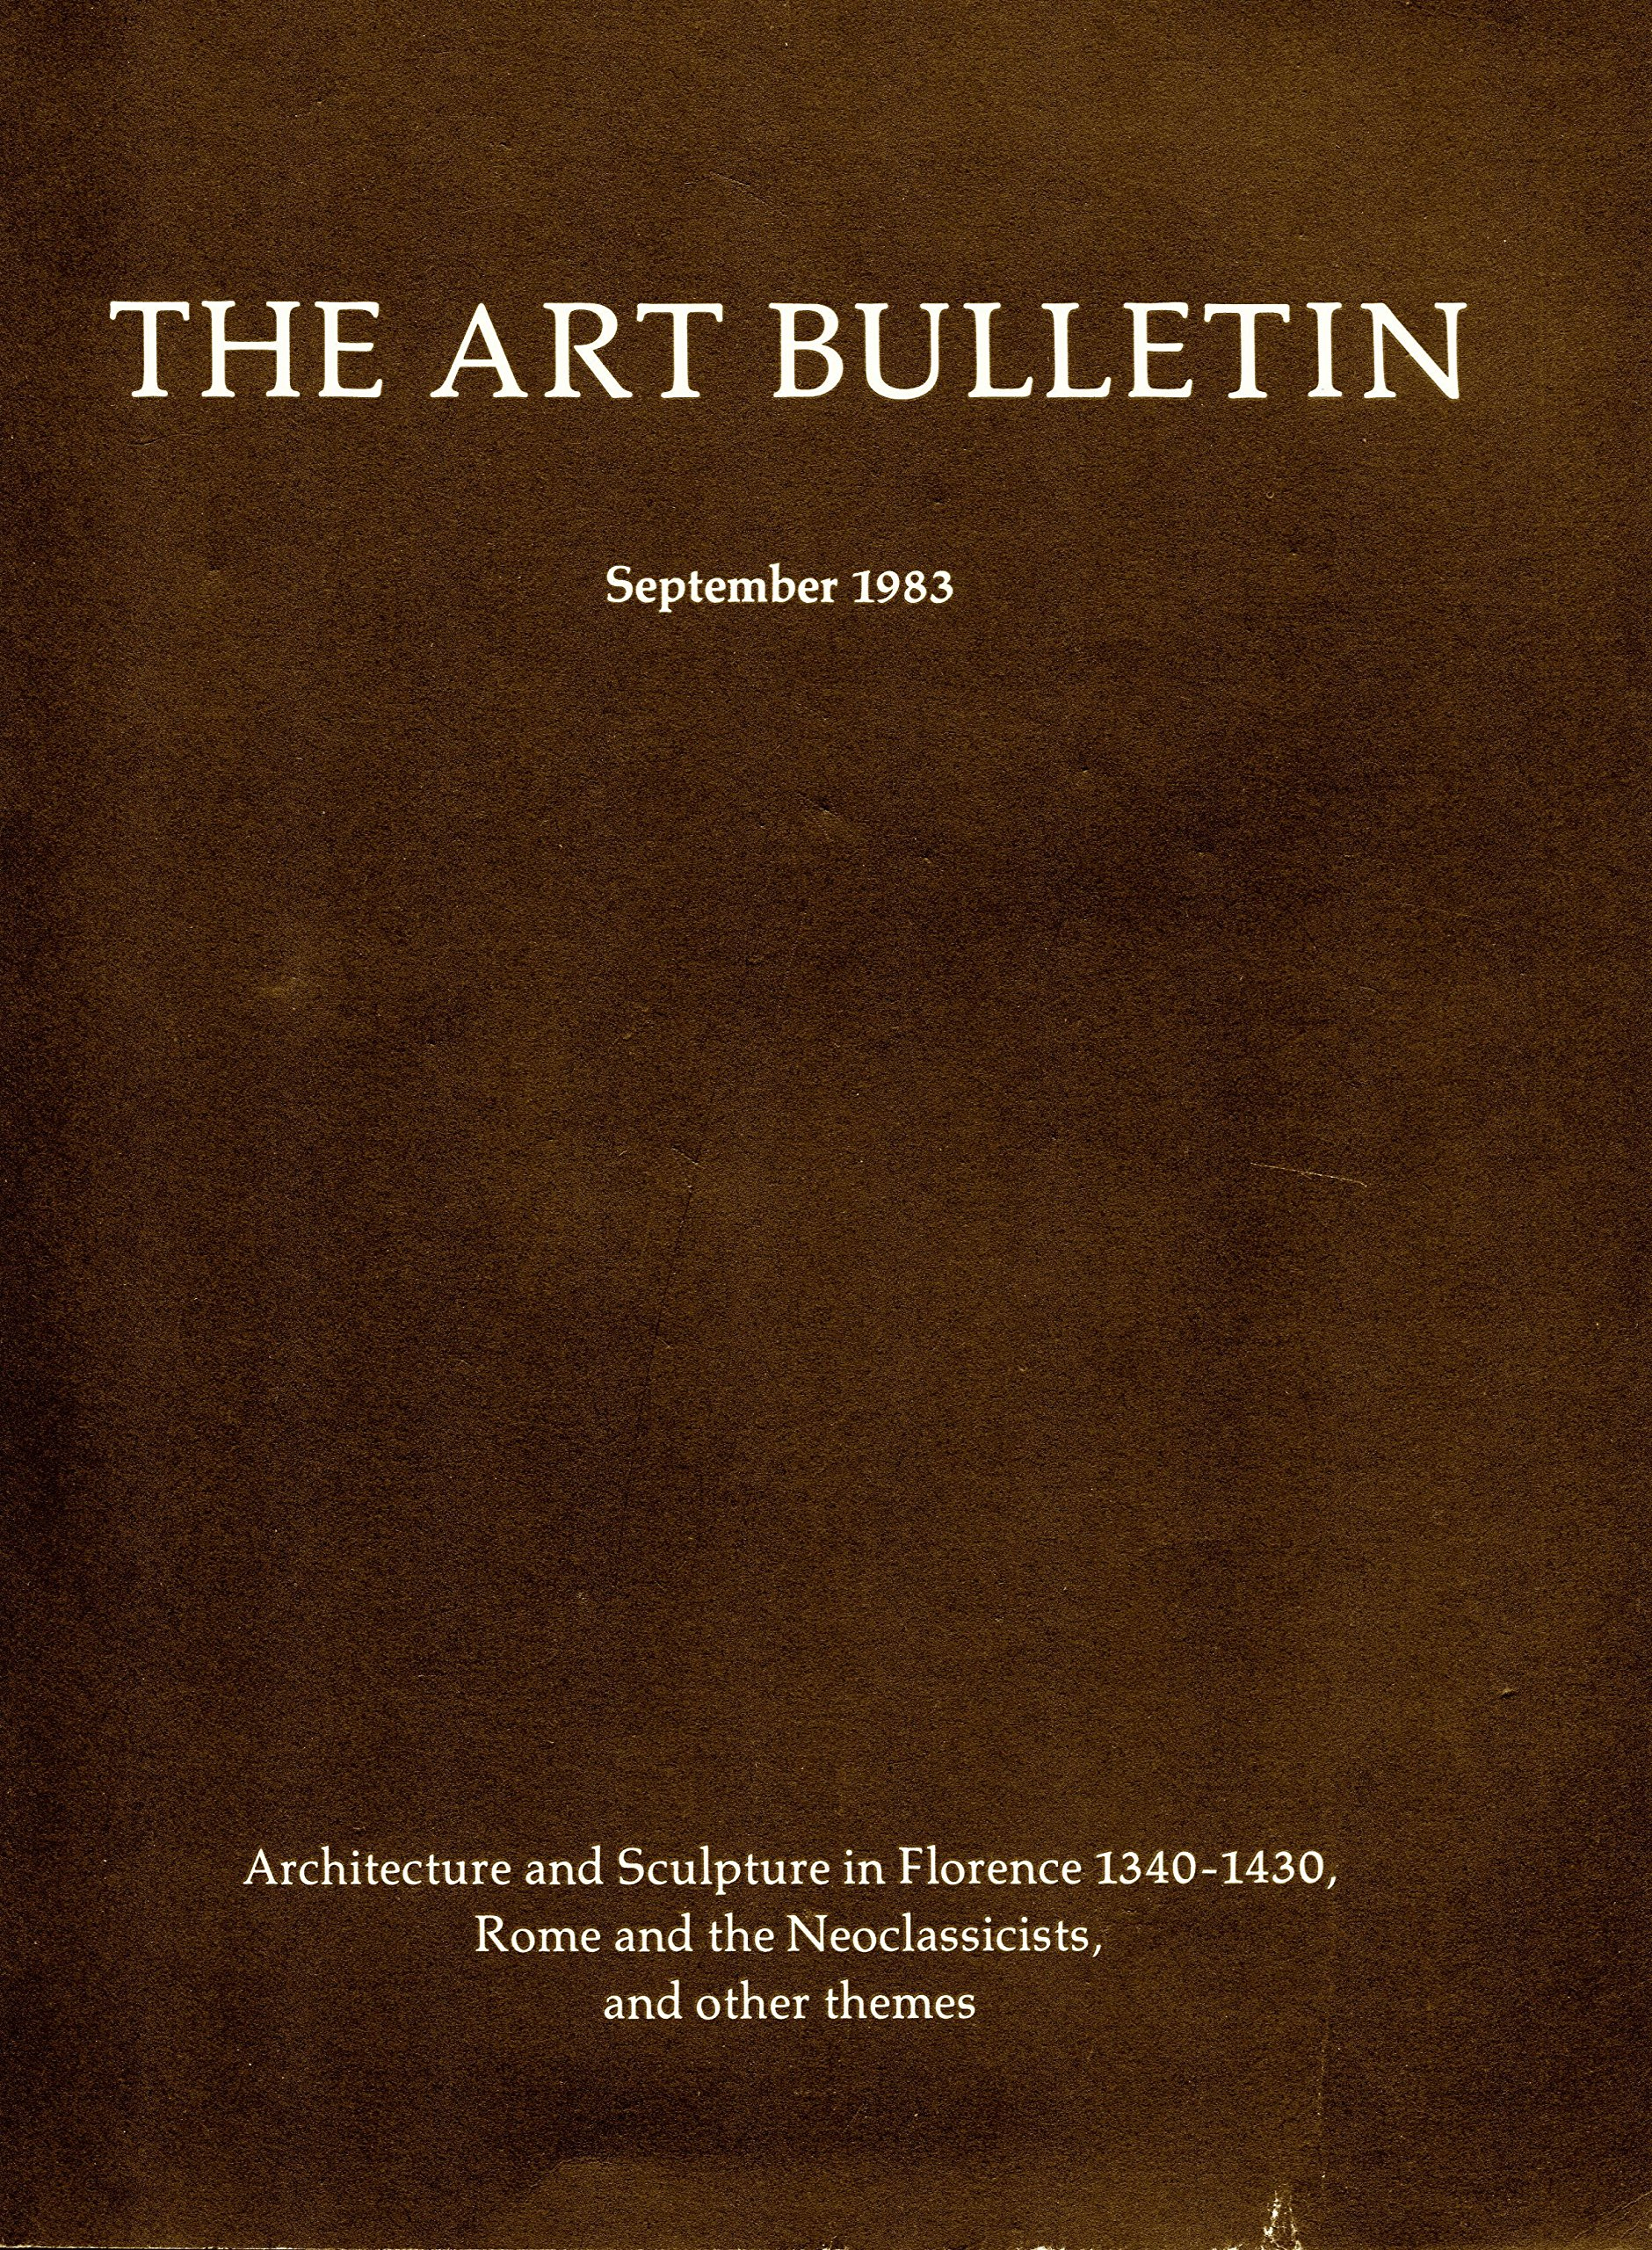 the art bulletin a quarterly published by the college art association of america september 1983 volume lxv number 3 architecture and sculpture in florence 1340 1430 rome and the neoclassicists and other themes